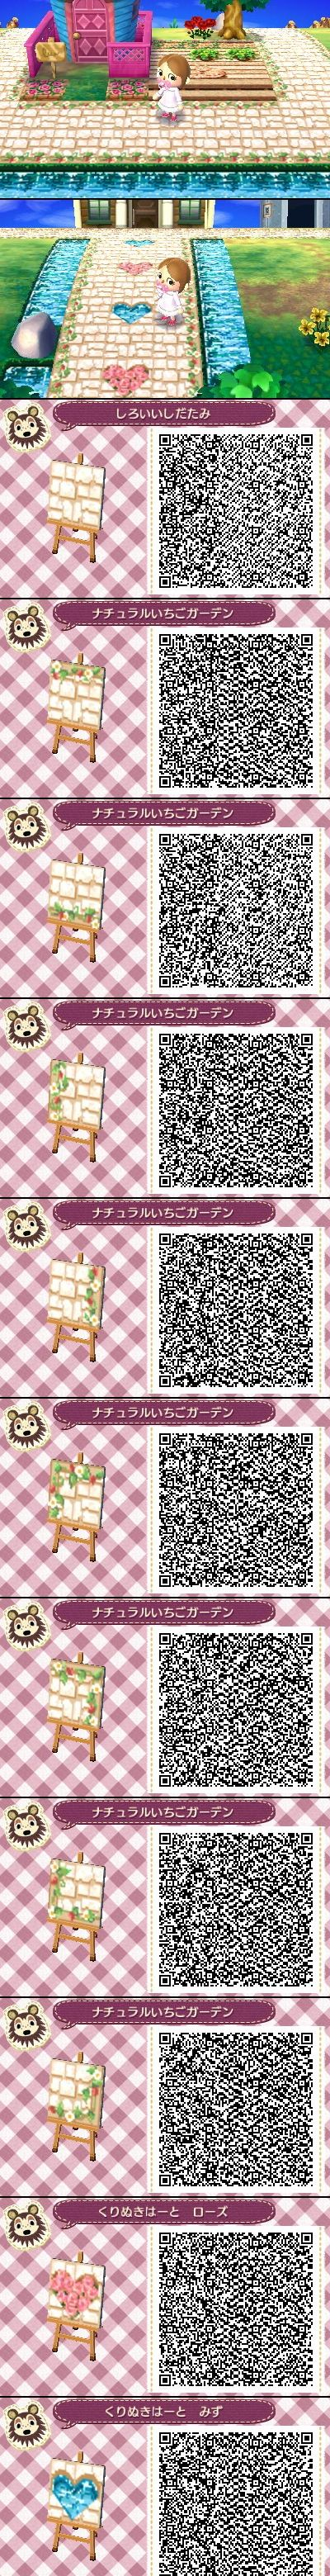 Rosy Pathstairs Animal Crossingnew Leaf Qr Codes T